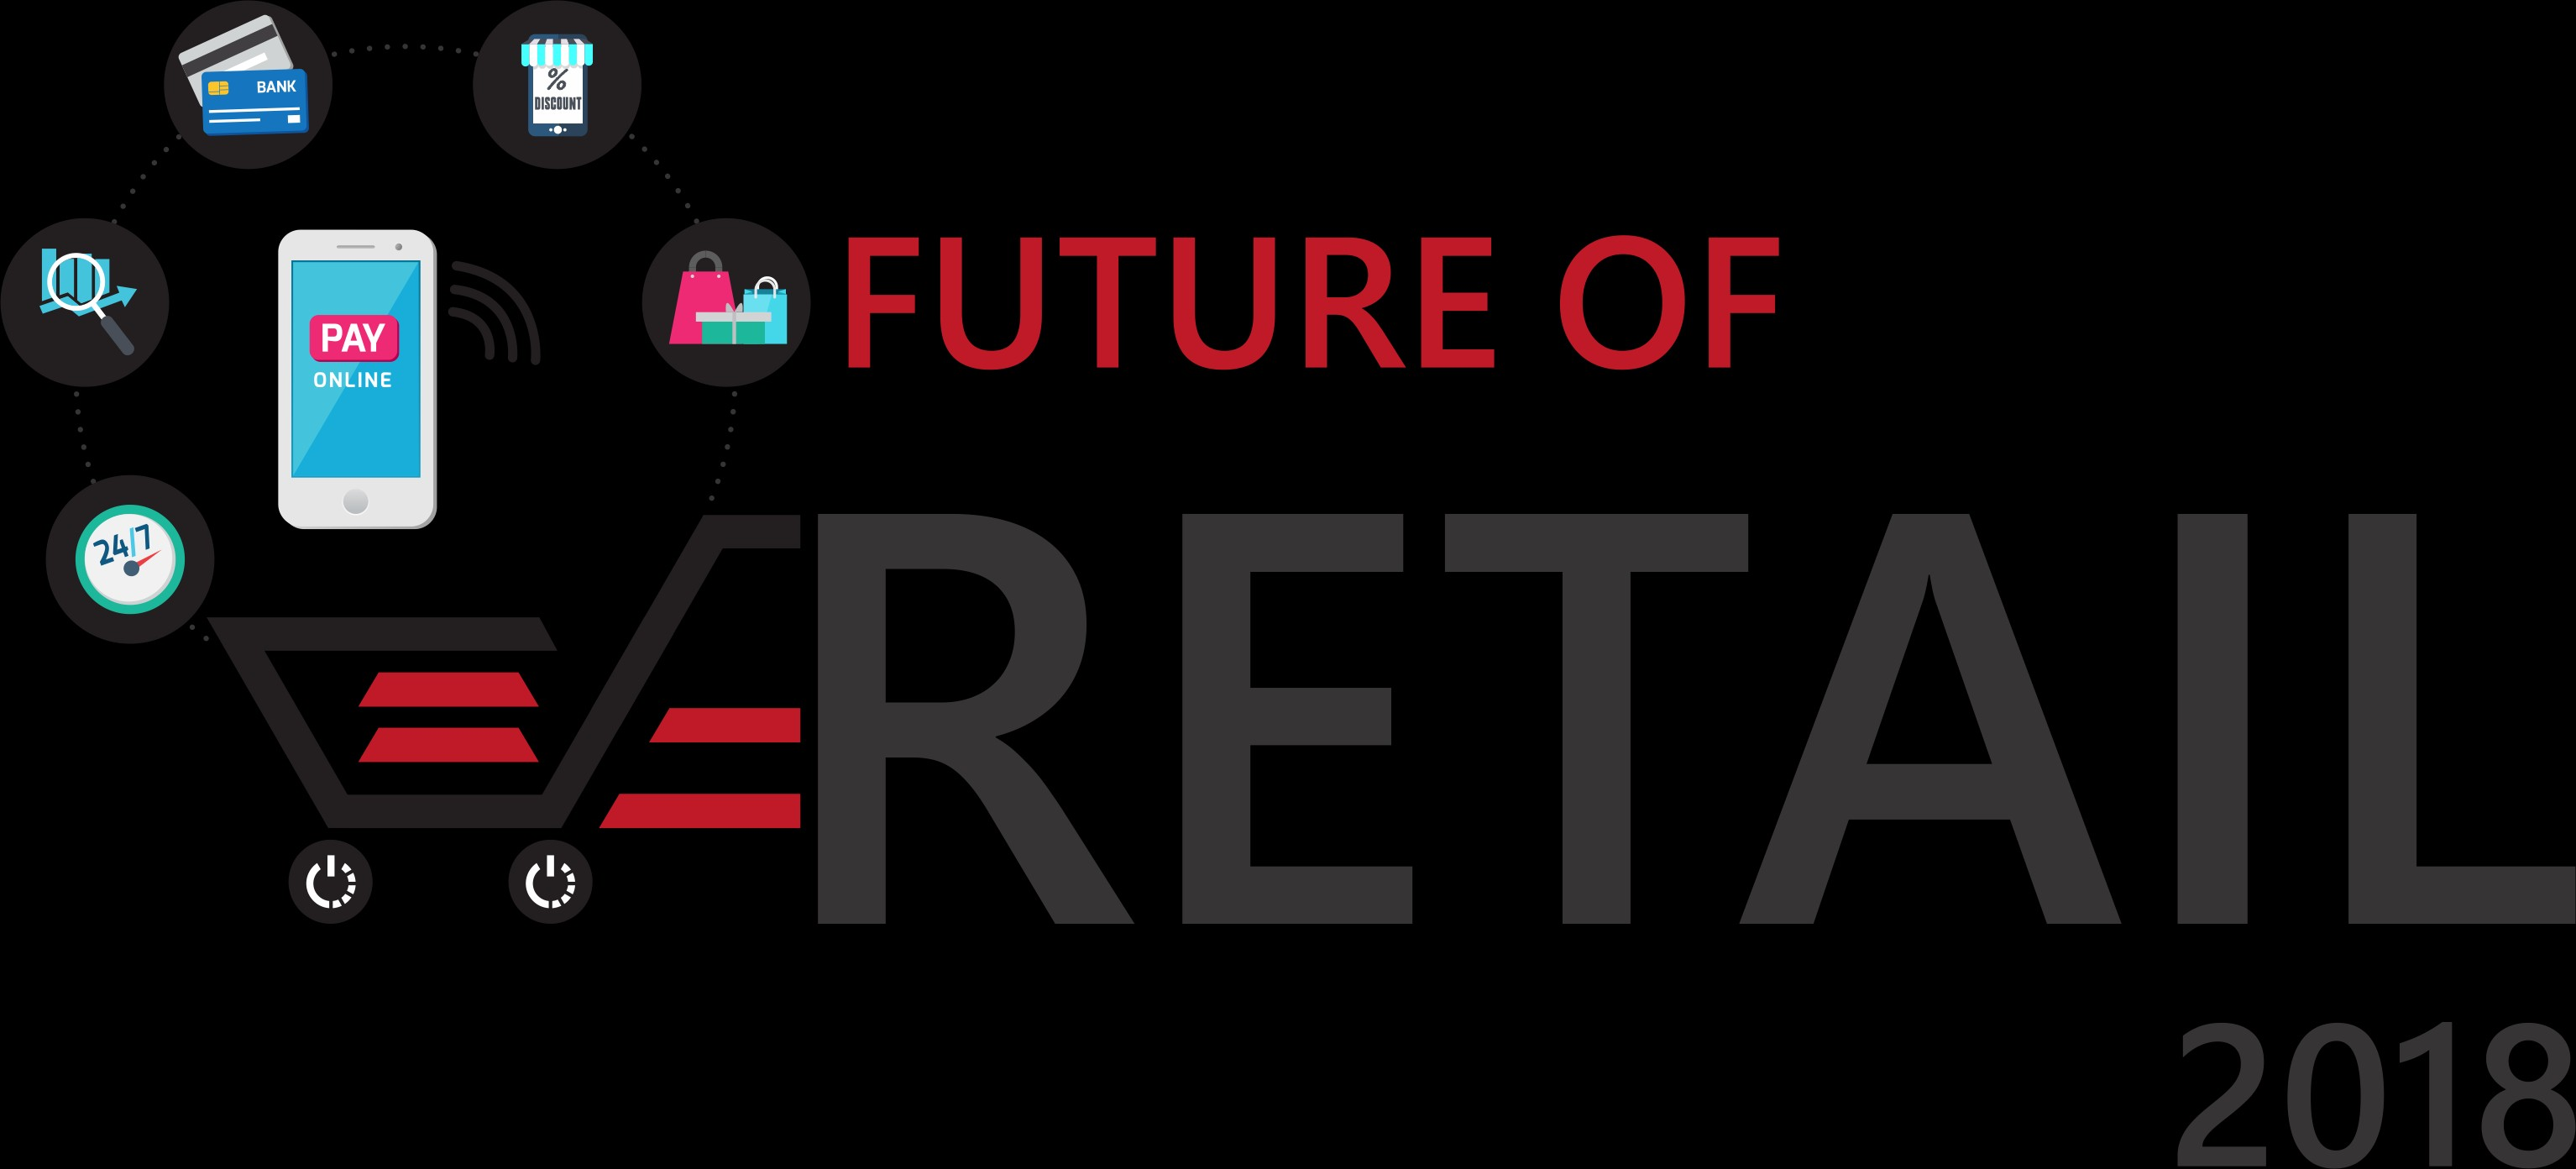 Our Partner Events Future of Retail 2018